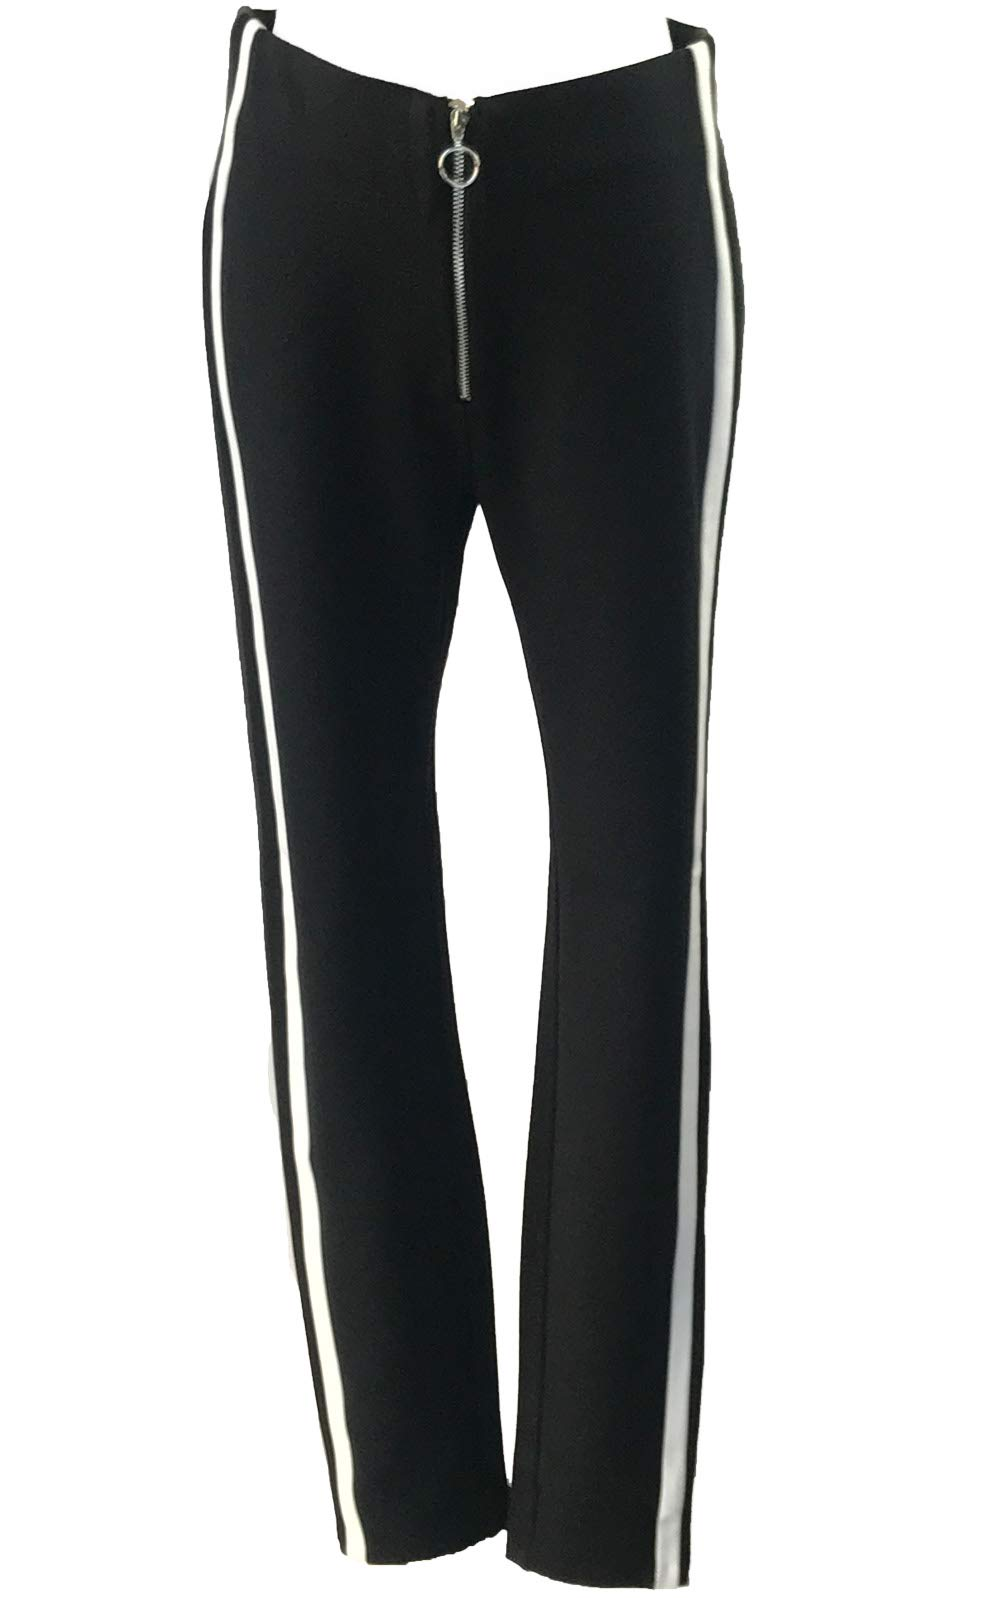 Blend 4 Thee Women Elastic Legging Pants, Front PU Shaped Cutting (Black Zipper Front/Stripes at Sides, M)